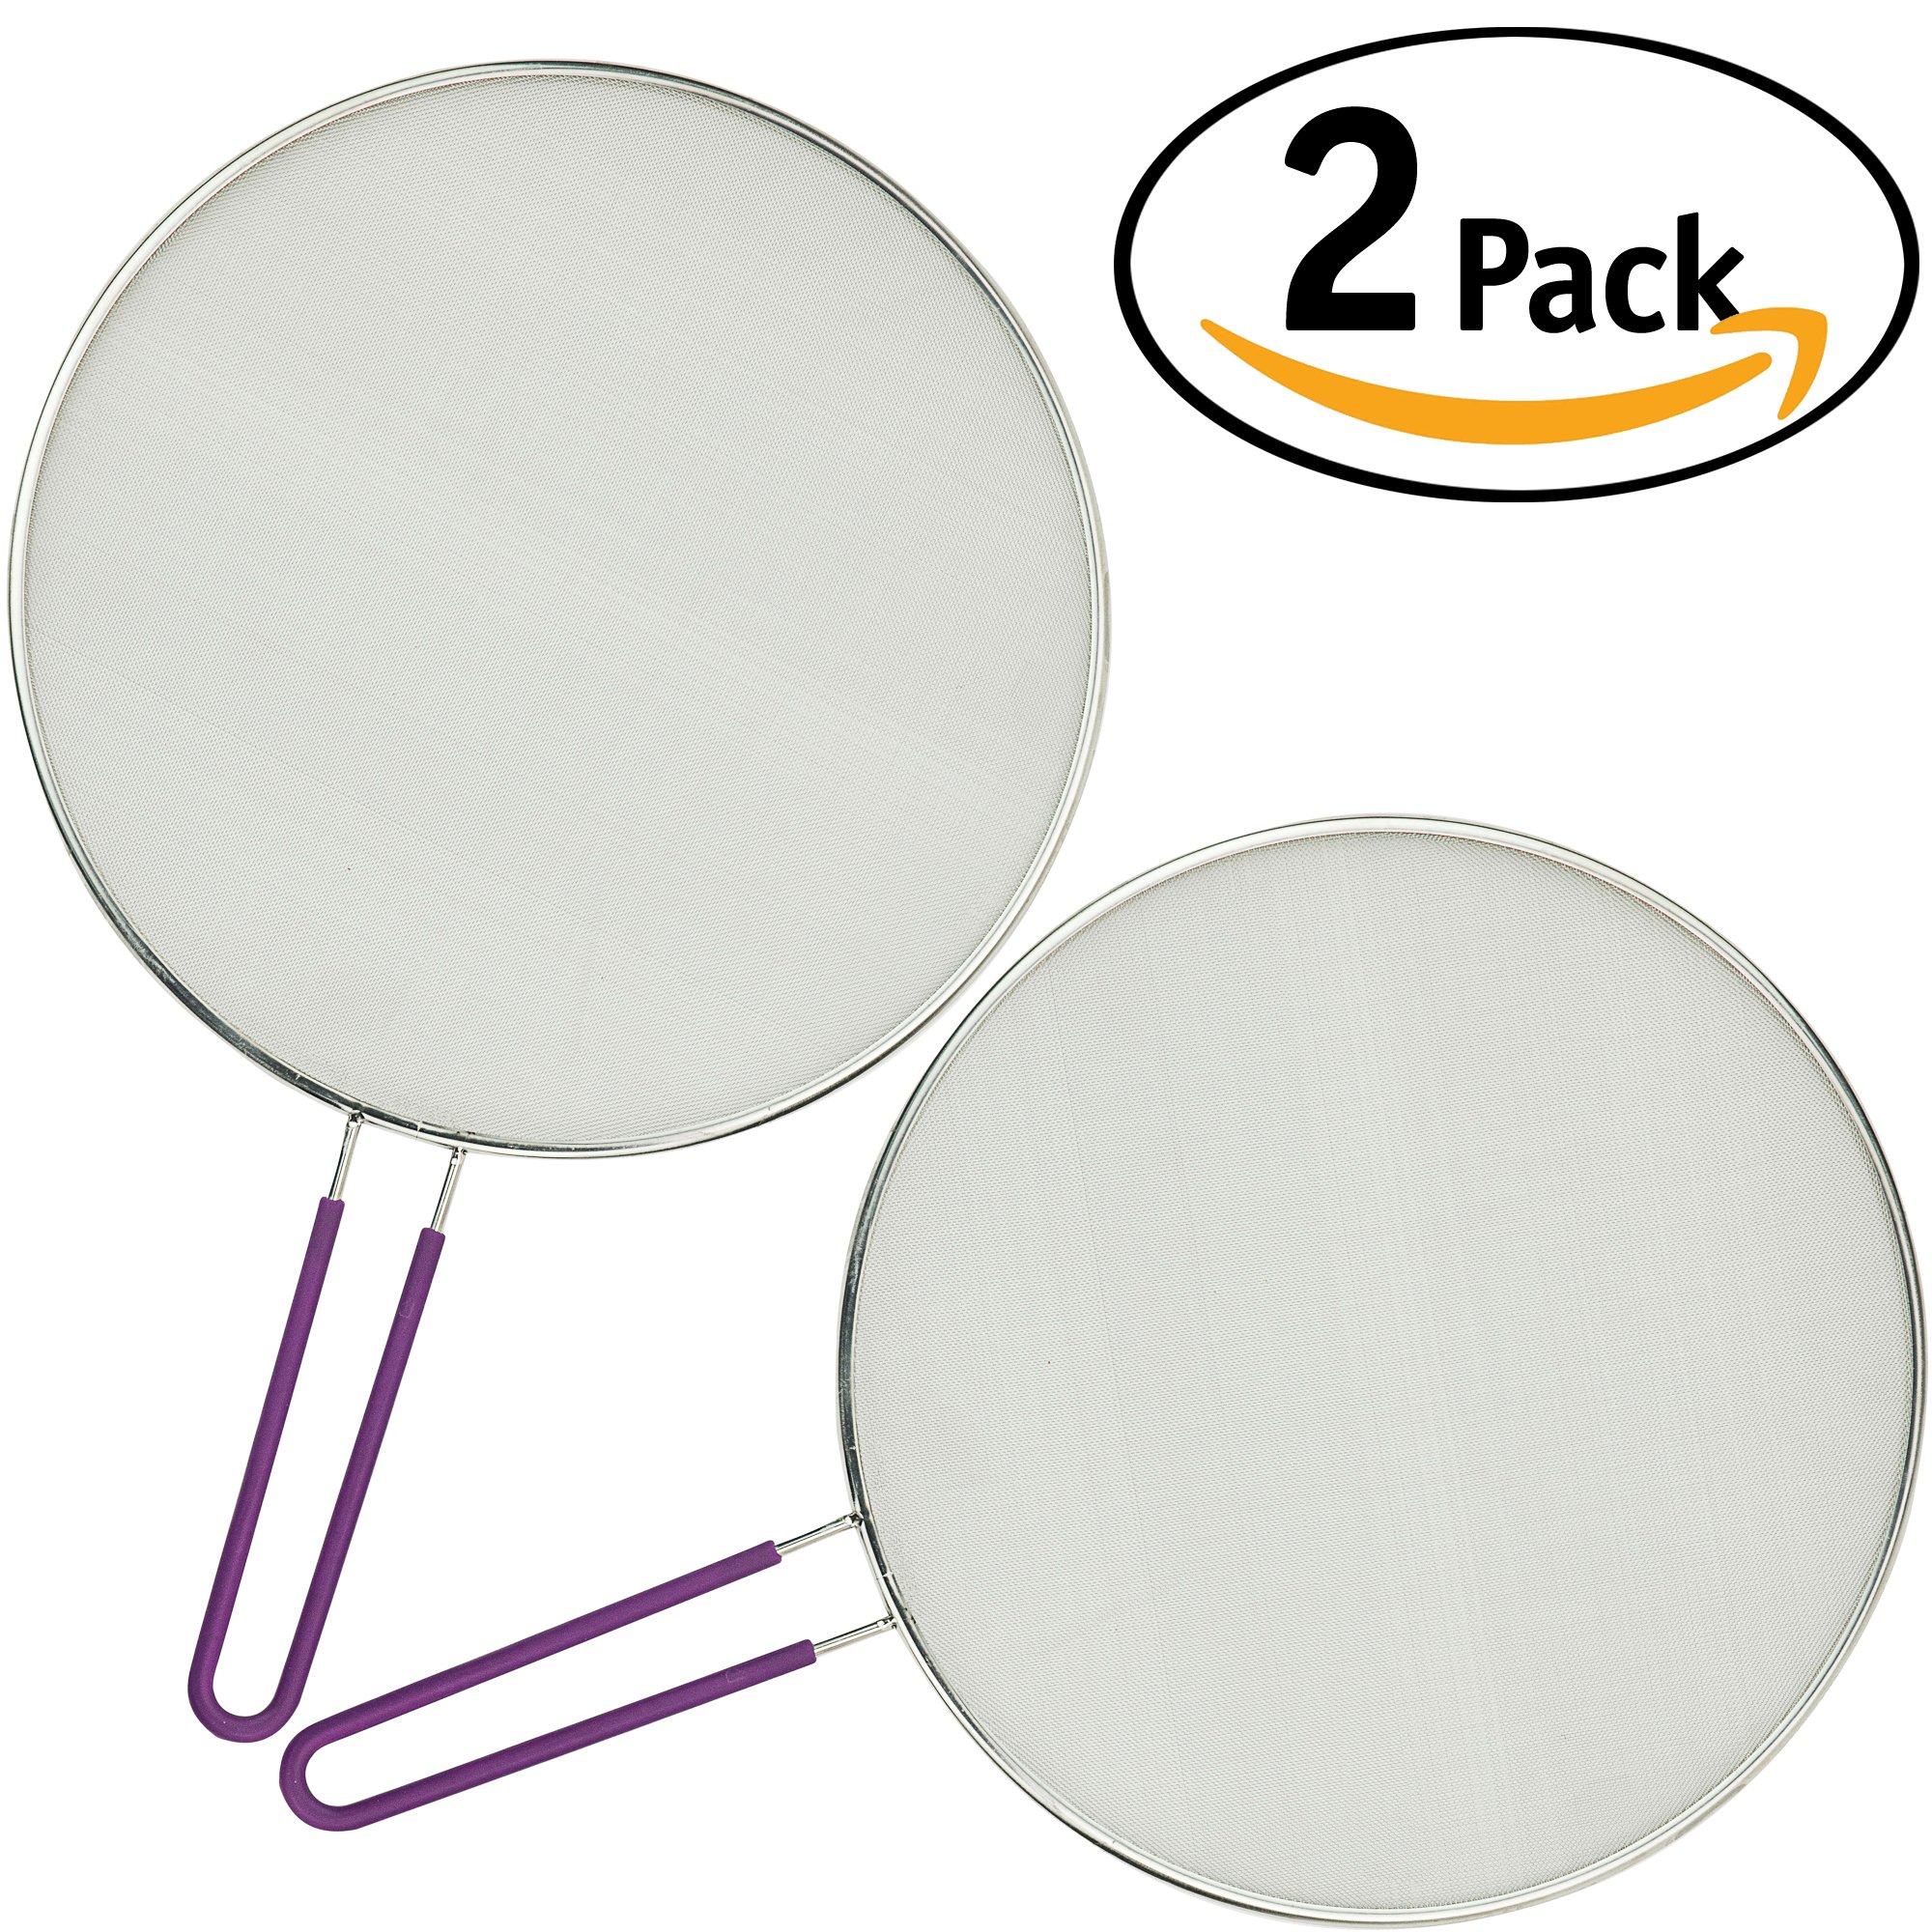 DecorRack Pack of 2 Splatter Screen Protectors 11 inch, Splatter Guard with Handle for Frying Pan and Cooking, Stainless Steel Fine Mesh Oil Splatter Screen Cover, Flat Strainer (2 Pack)